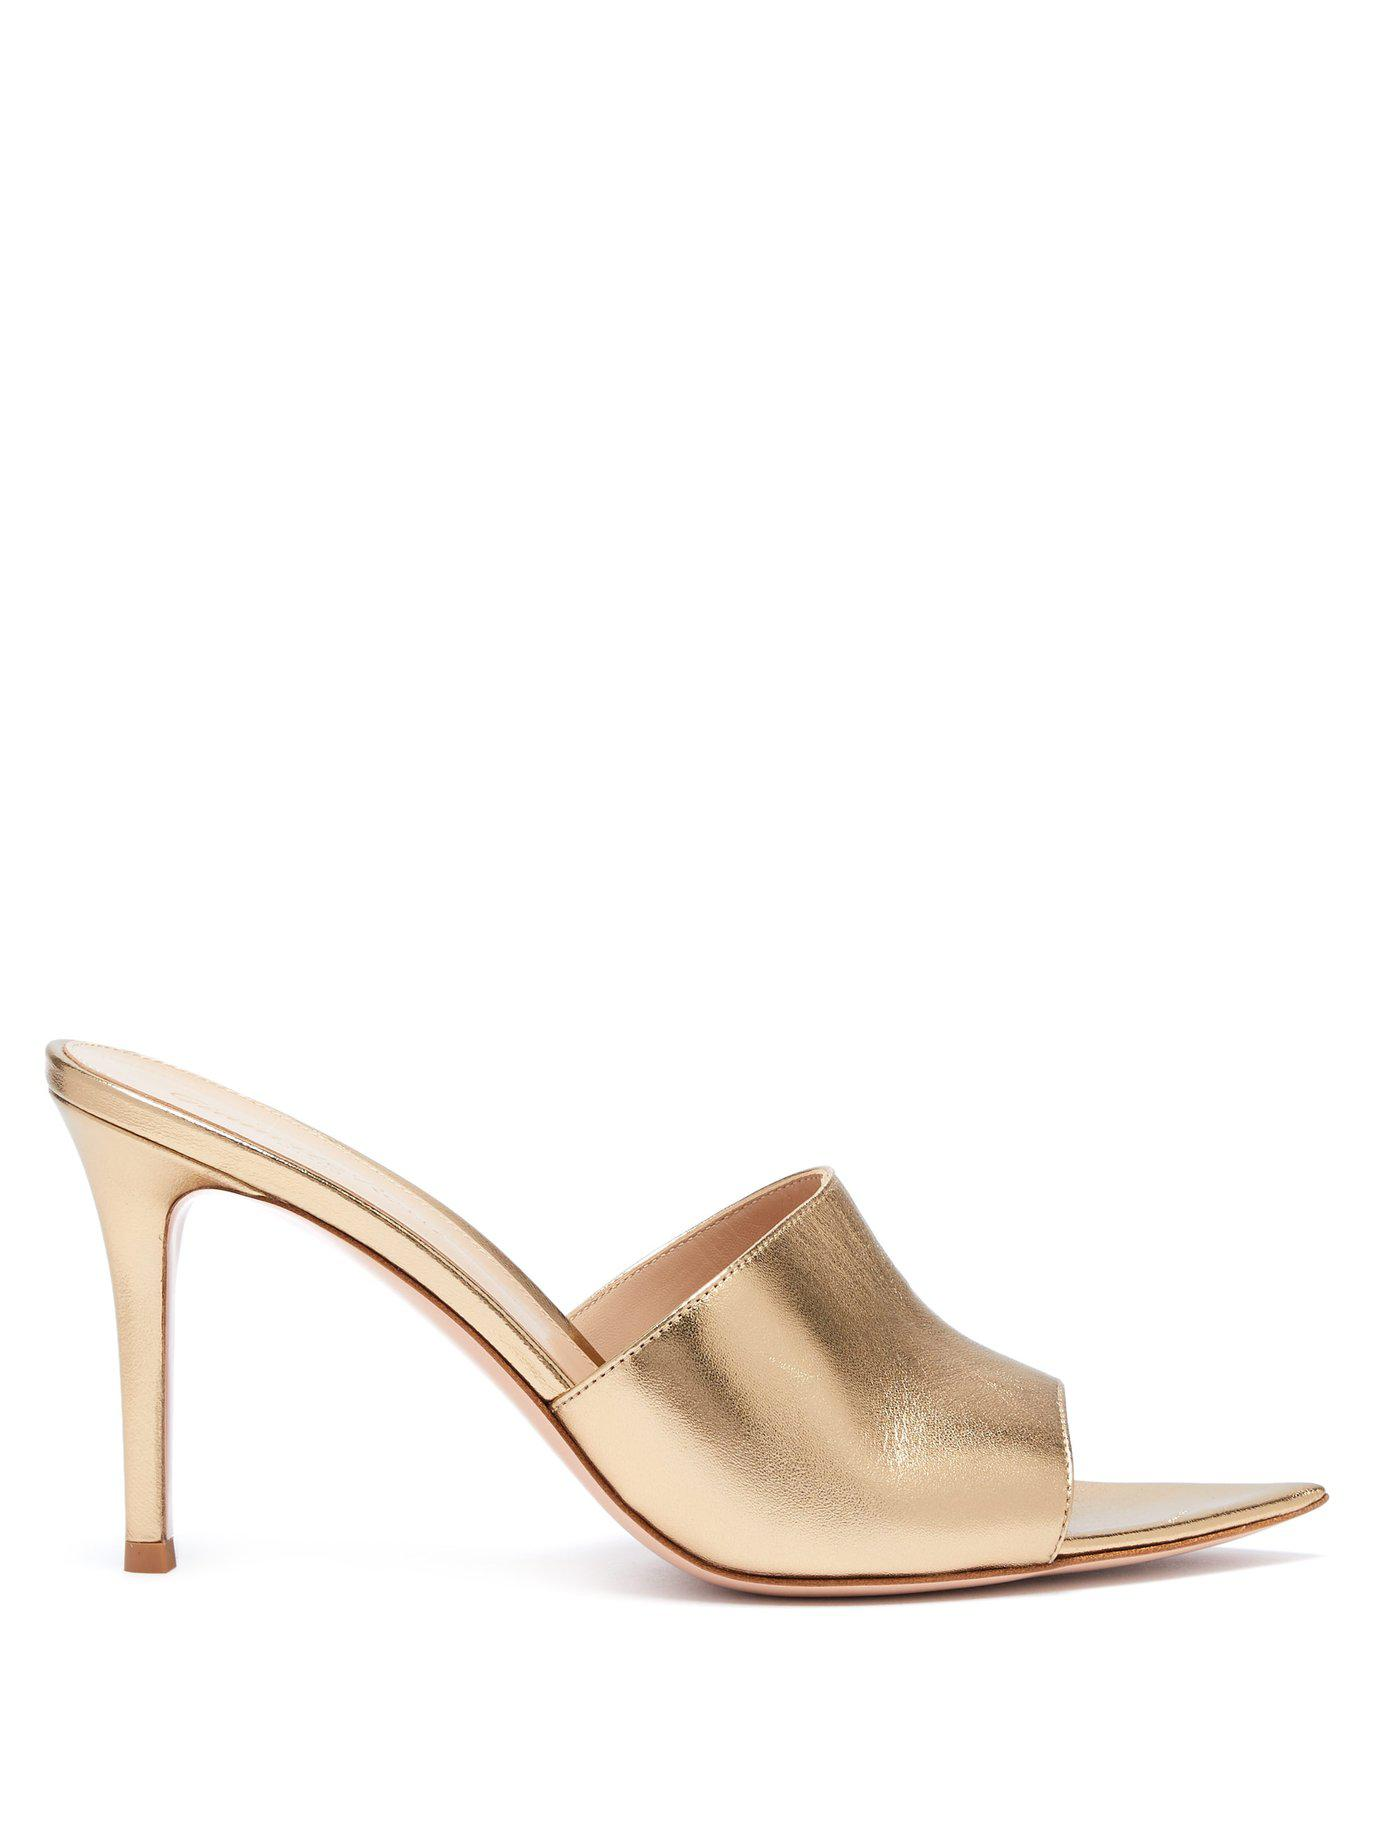 7b2a9195209c Lyst - Gianvito Rossi Alise 85 Grained Leather Mules in Metallic